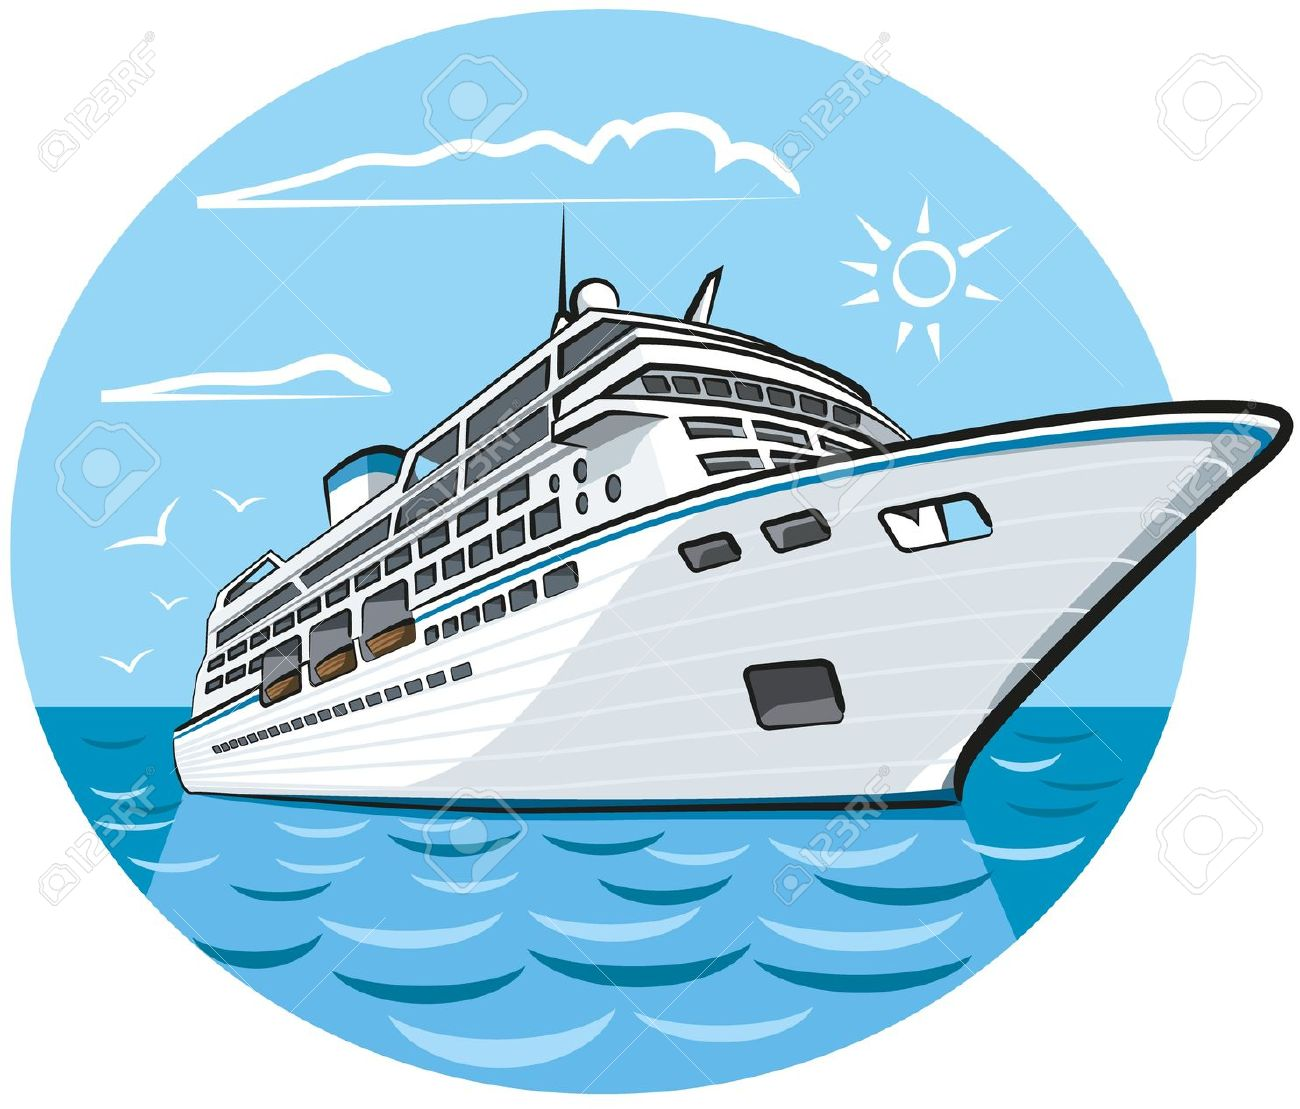 Boat clipart yacht – Cruise Clipart Ship Cruise